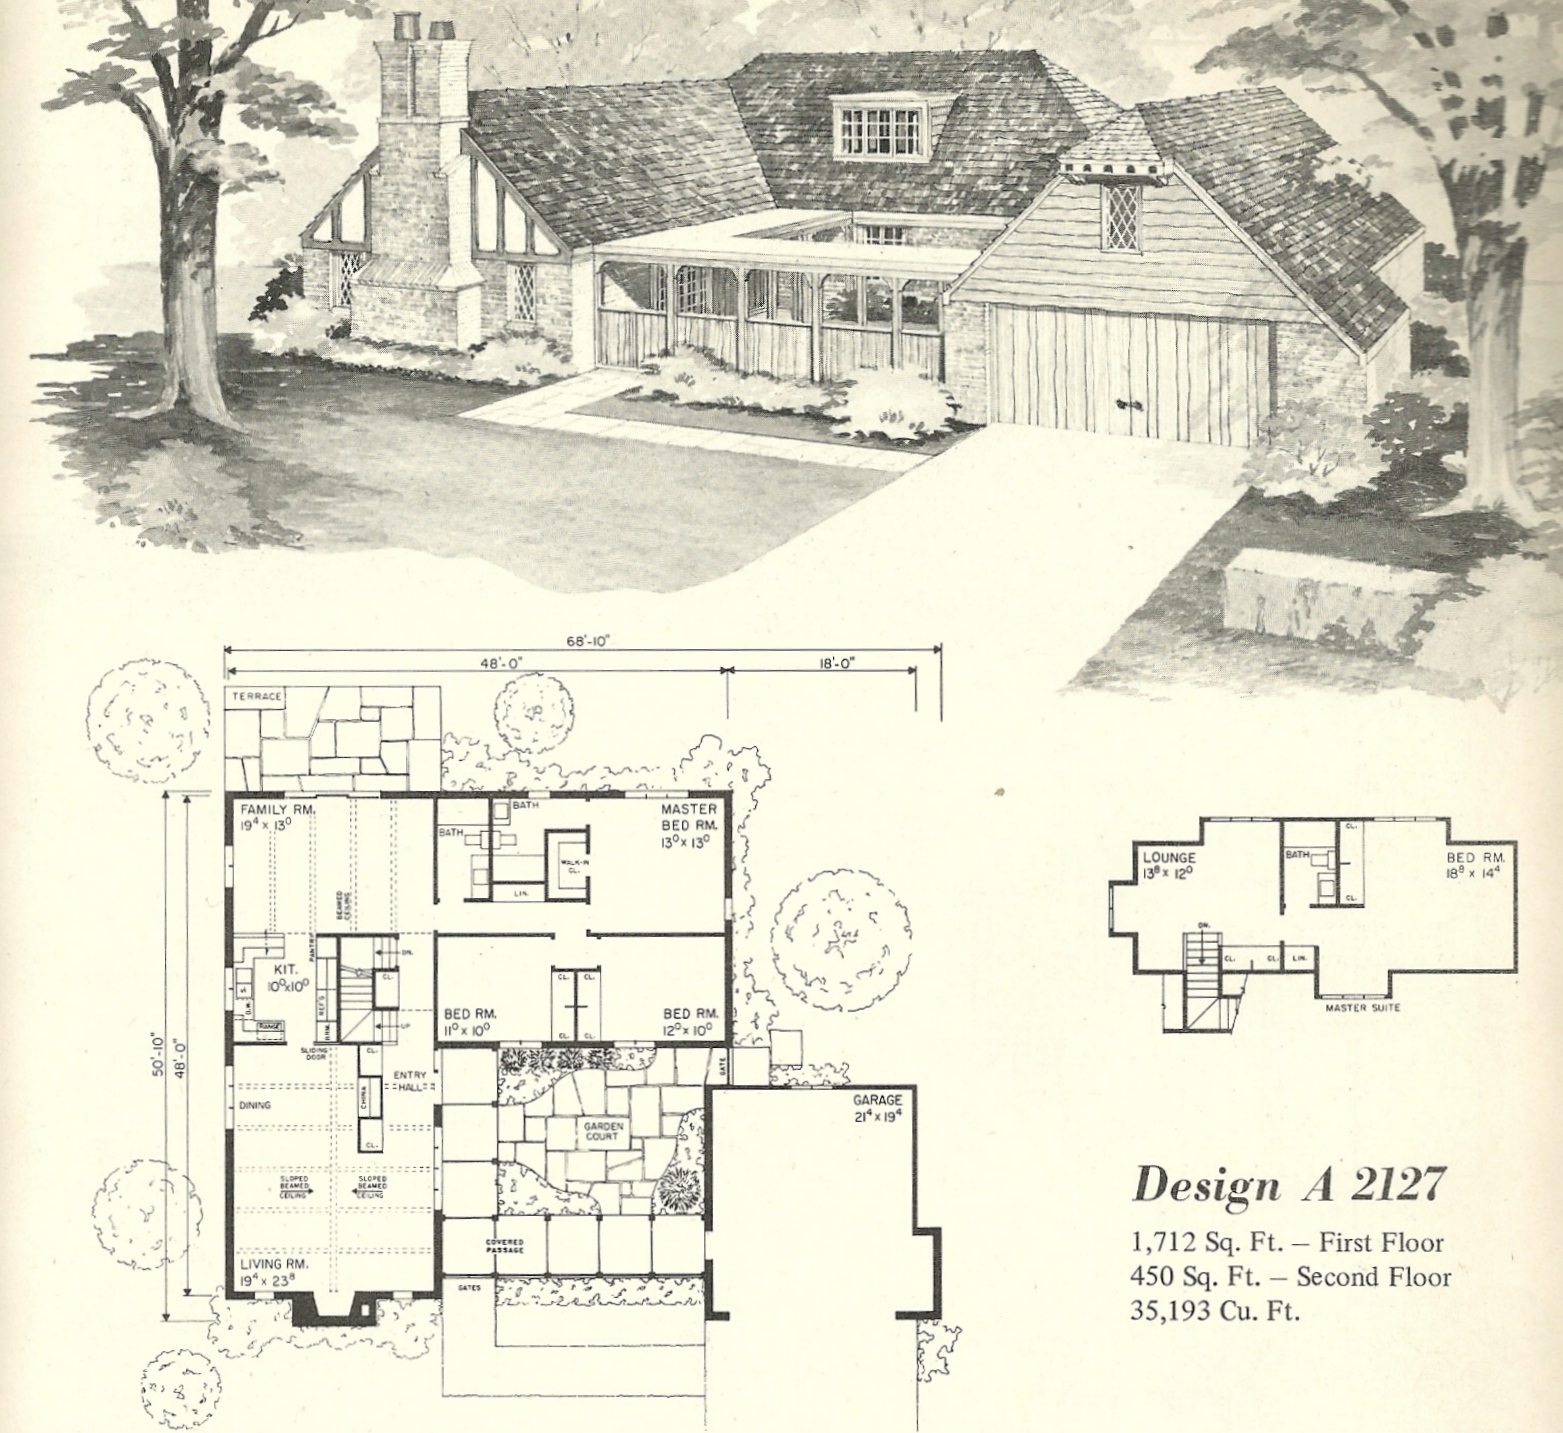 Vintage house plans 2127 antique alter ego for 1970s house floor plans